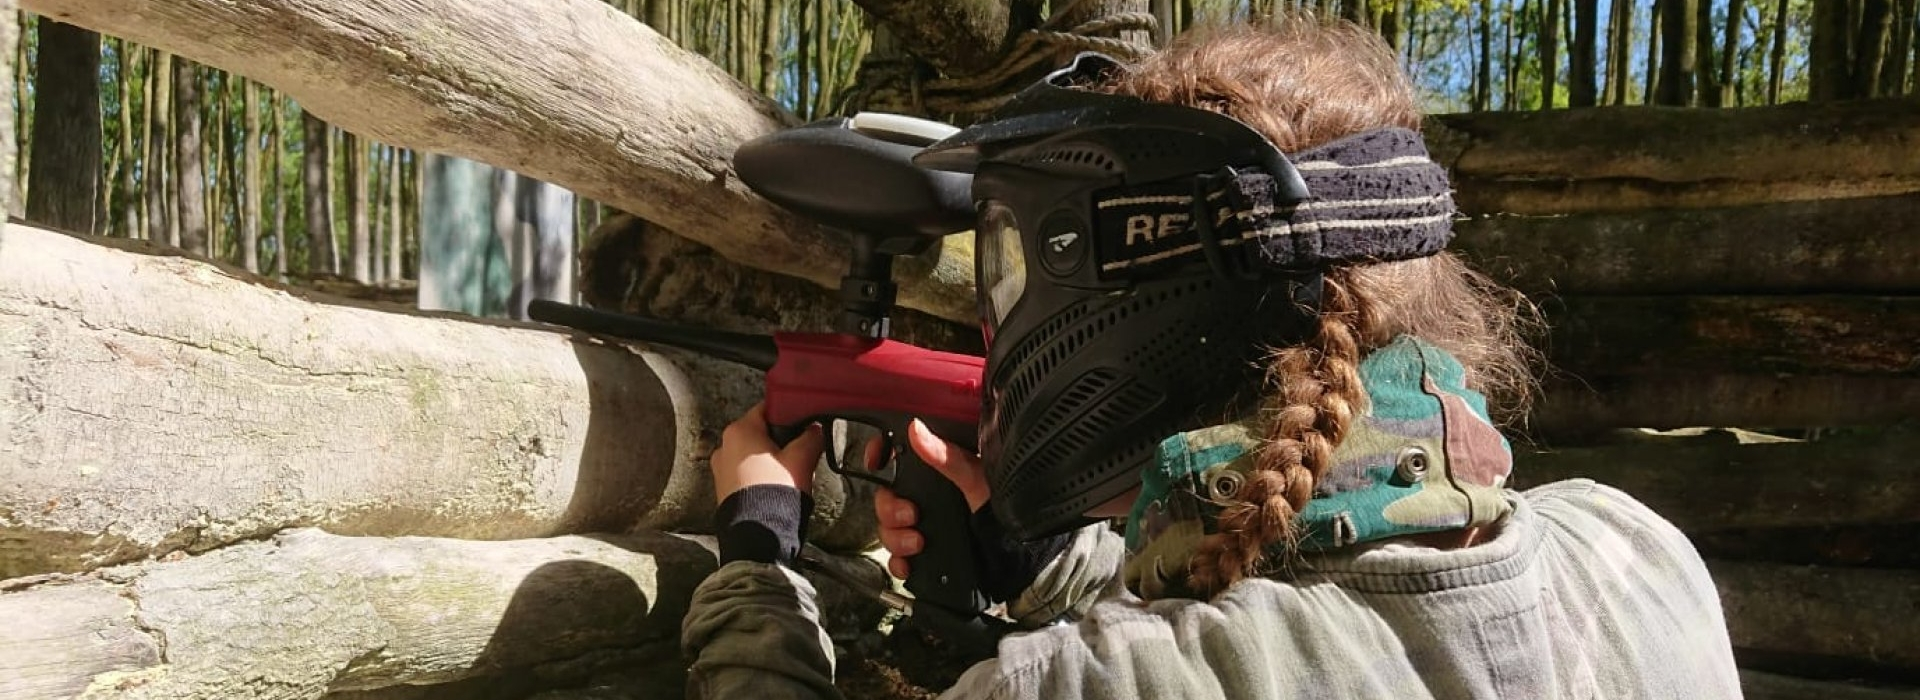 Girls_Paintball.jpg